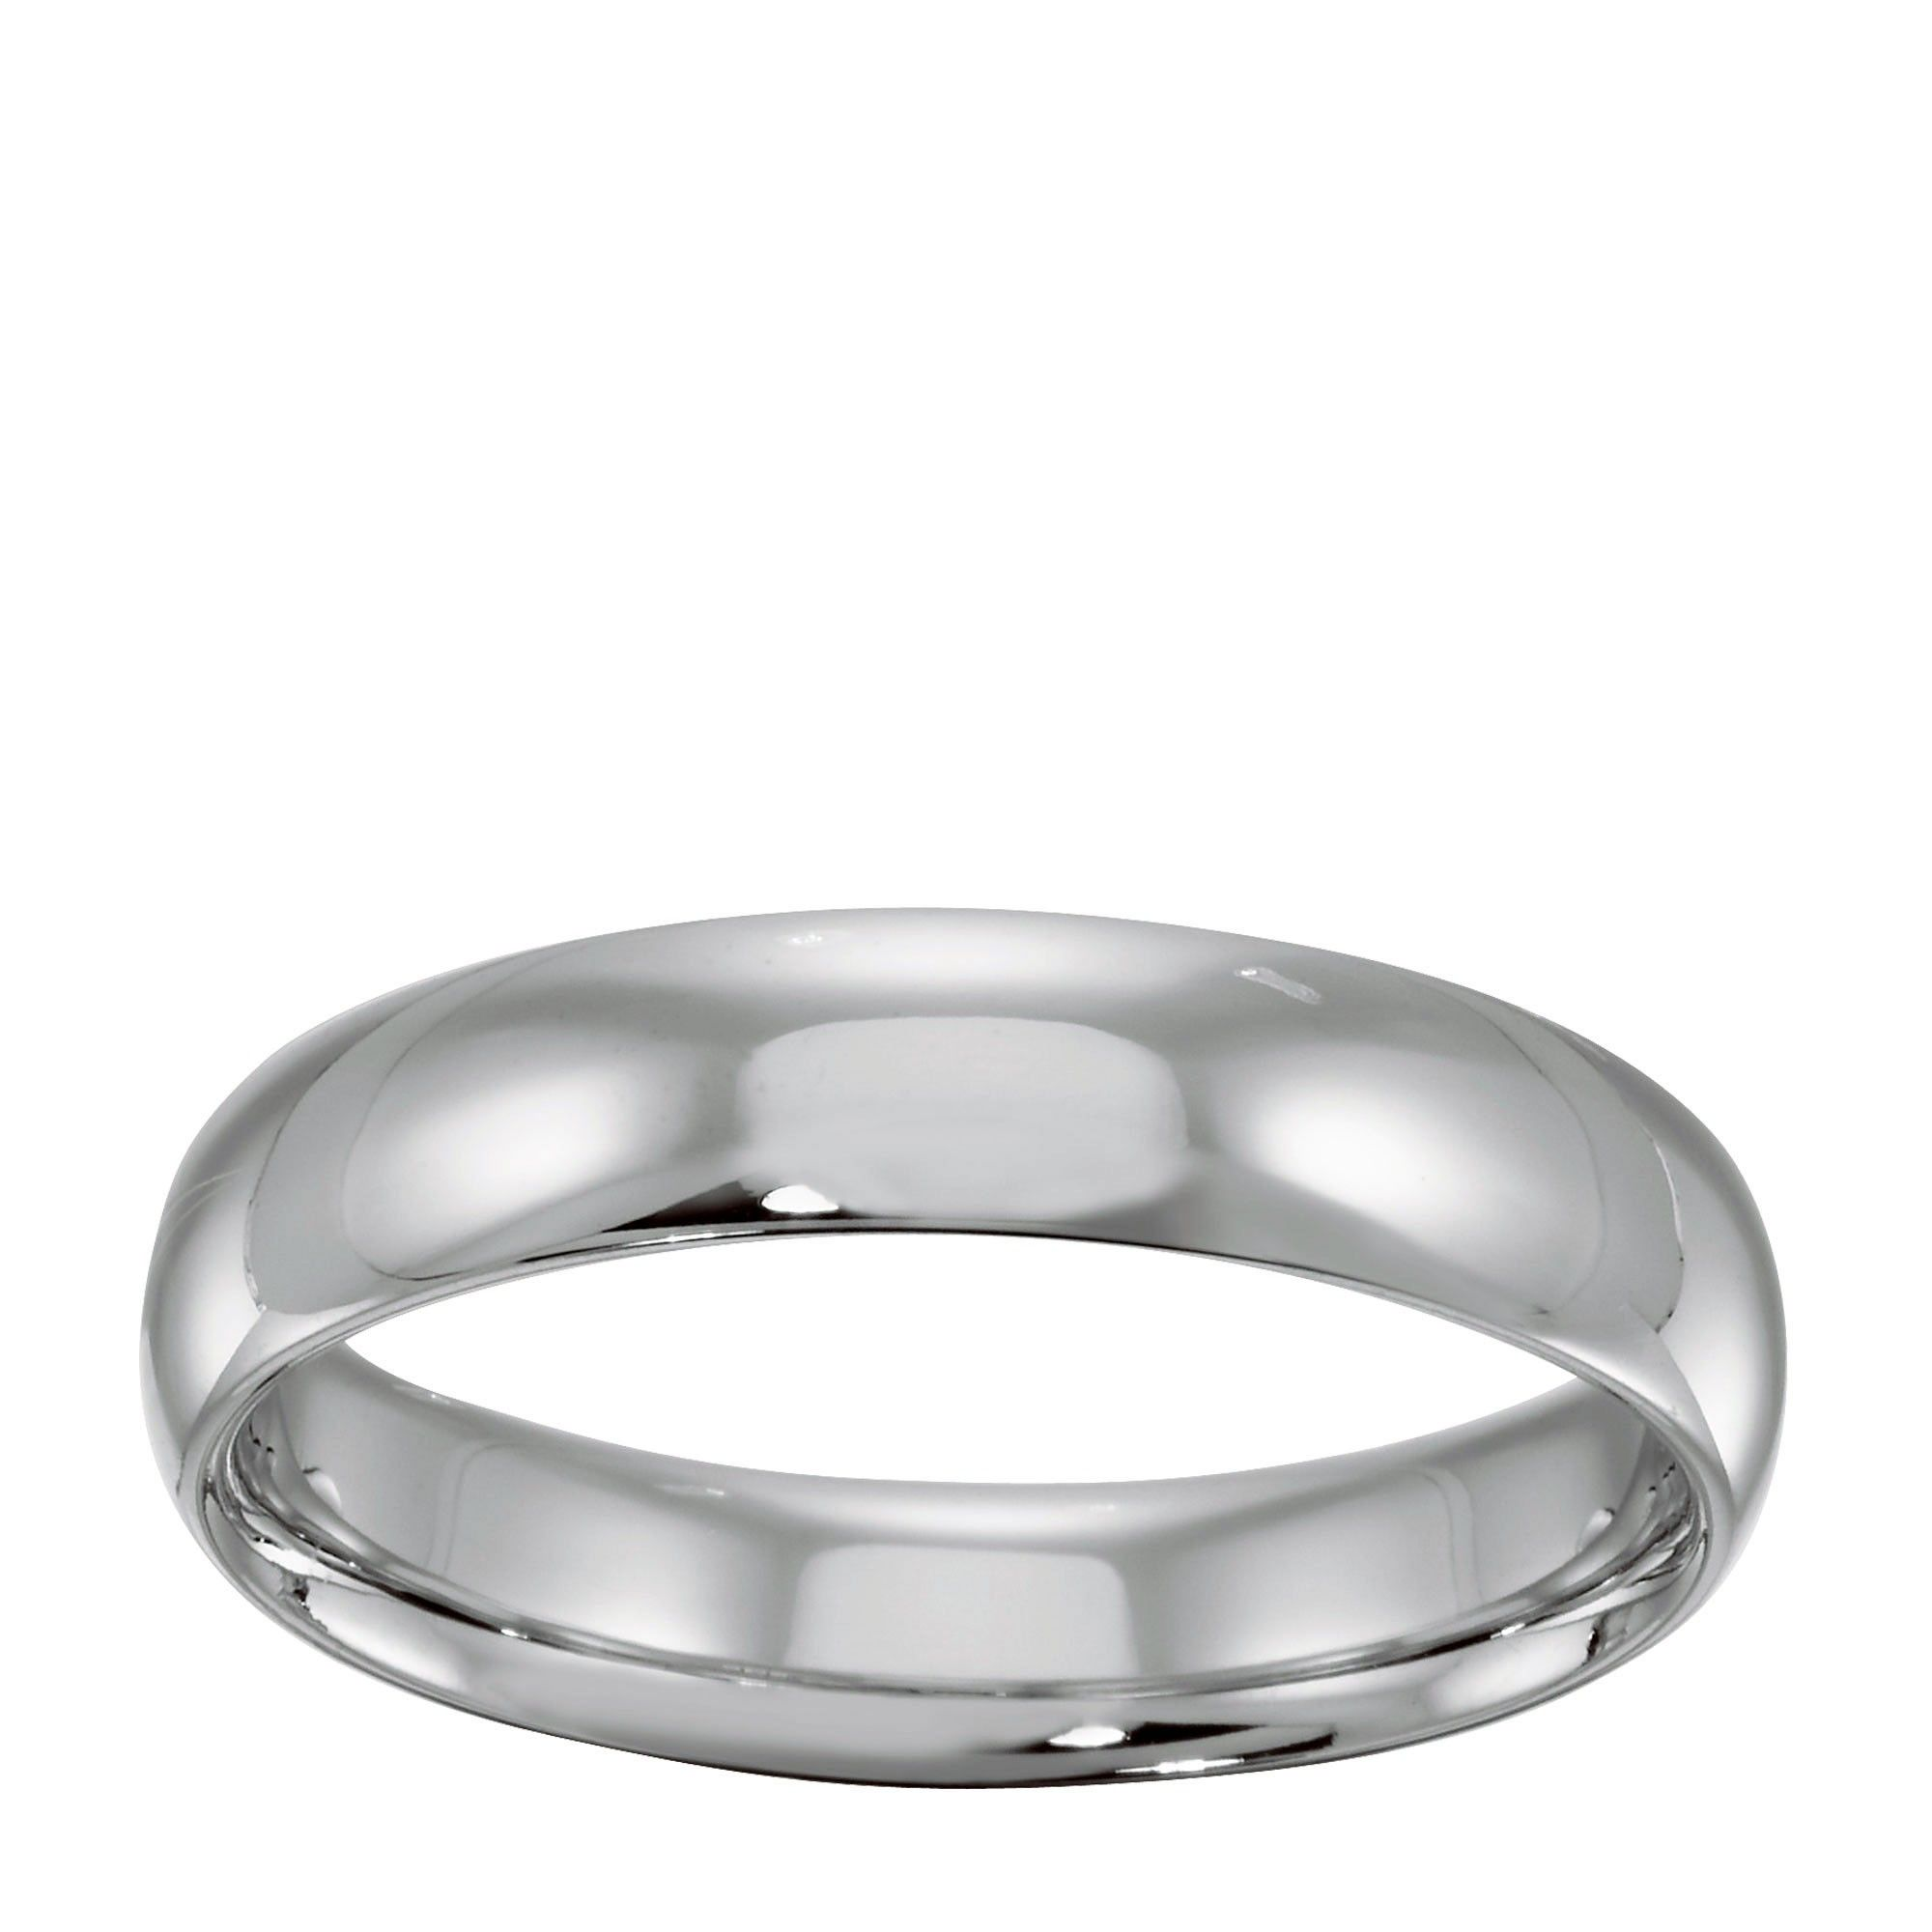 Andre+-+Our+high-polish+men's+domed+ring+is+a+simple+way+to+make+a+big++statement.++Crafted+from+14k+white+gold,+this+sophisticated+ring+is++celebrated+for+its+uncluttered,+smooth+design.